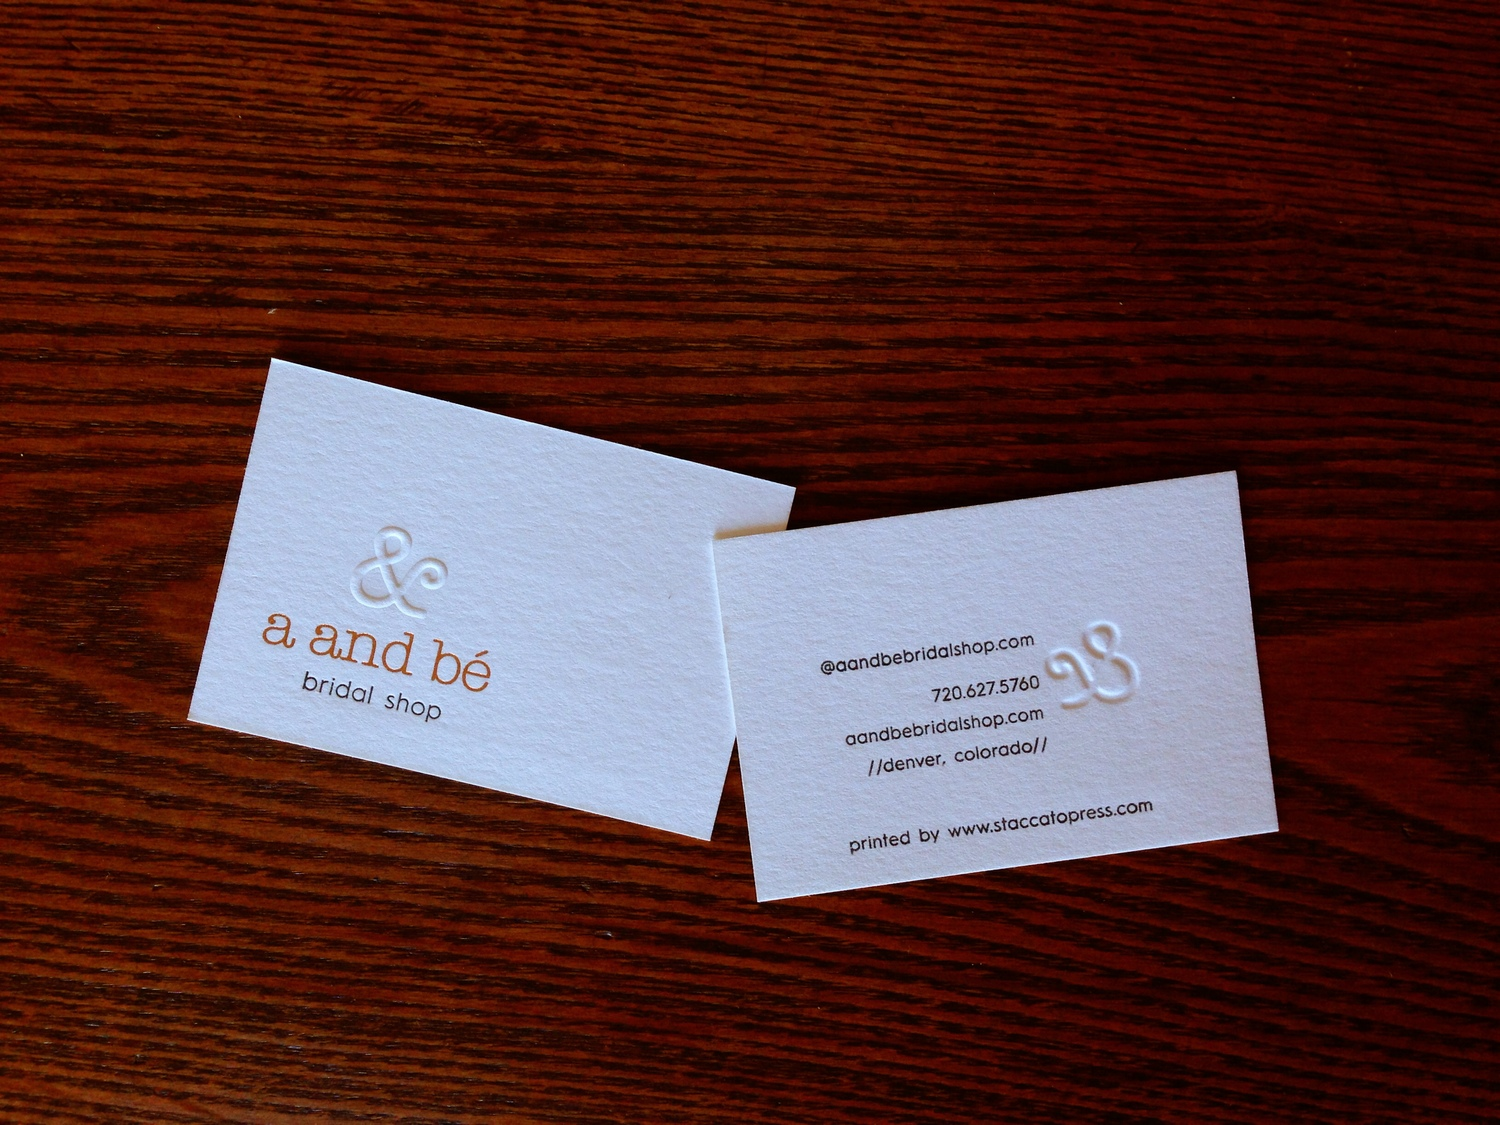 Business cards for abe bridal shop staccato press we just completed a super fun and challenging project for one of our favorite wedding vendors abe bridal shop the business cards for the shop are a reheart Gallery